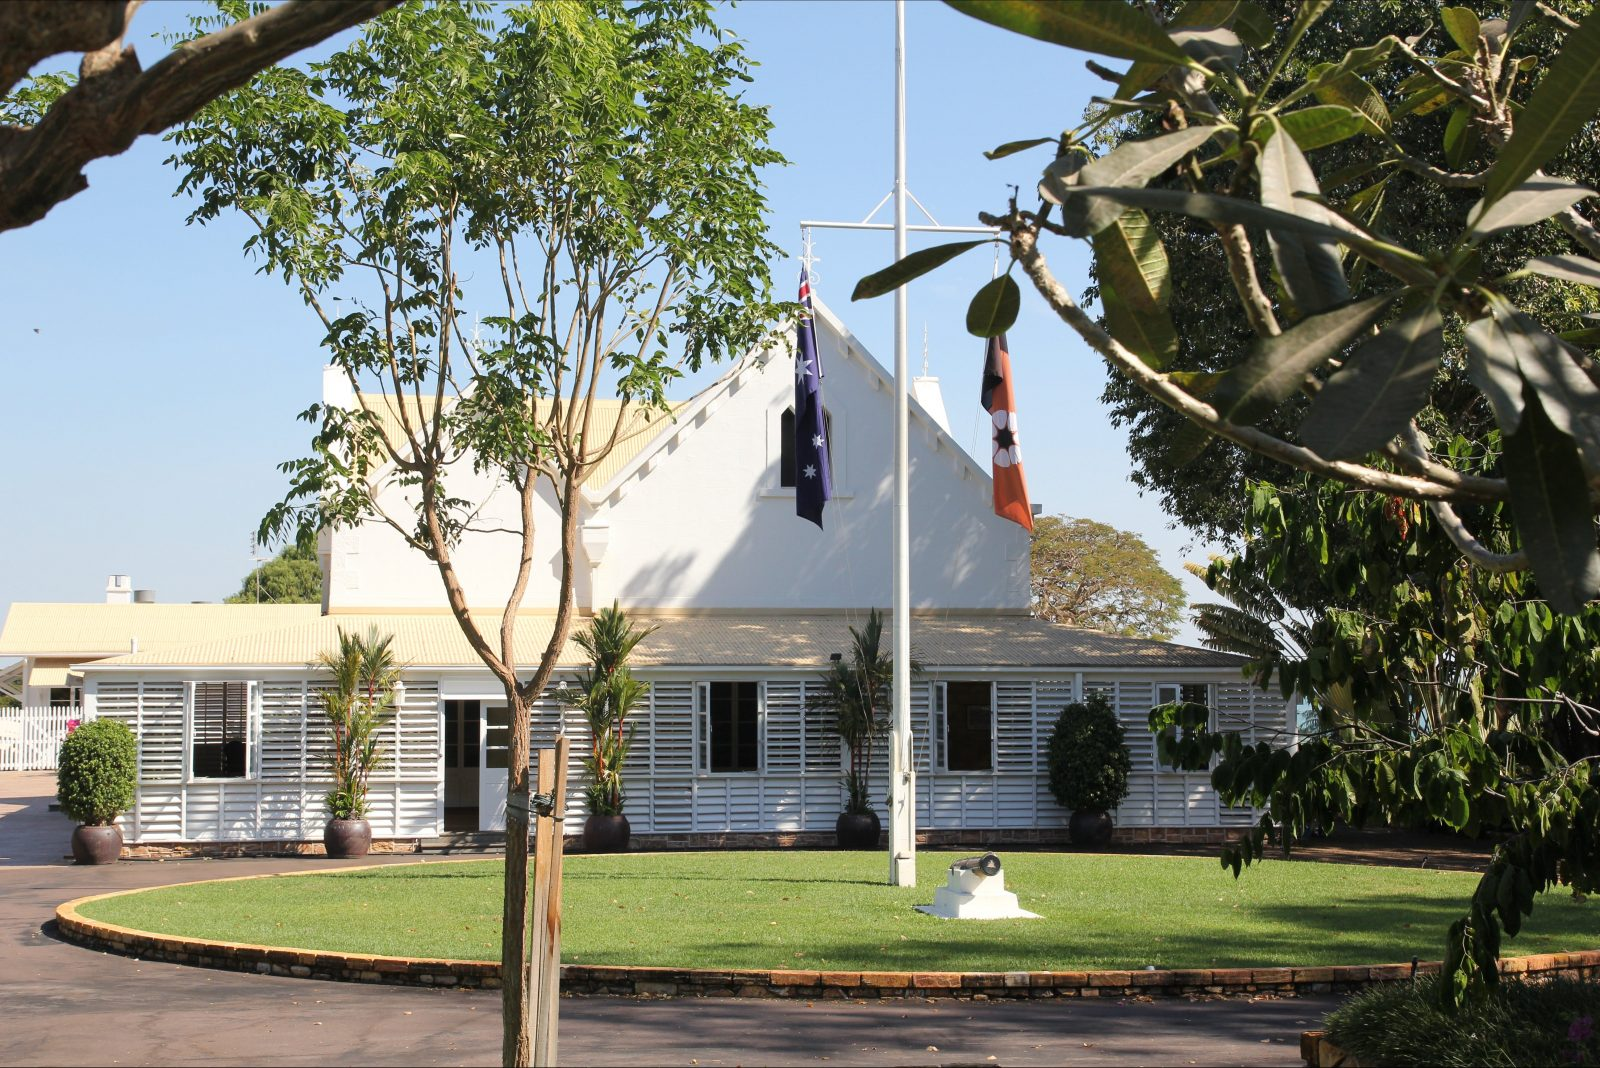 Front view of Government House with flag pole and frangipani tree in the foreground